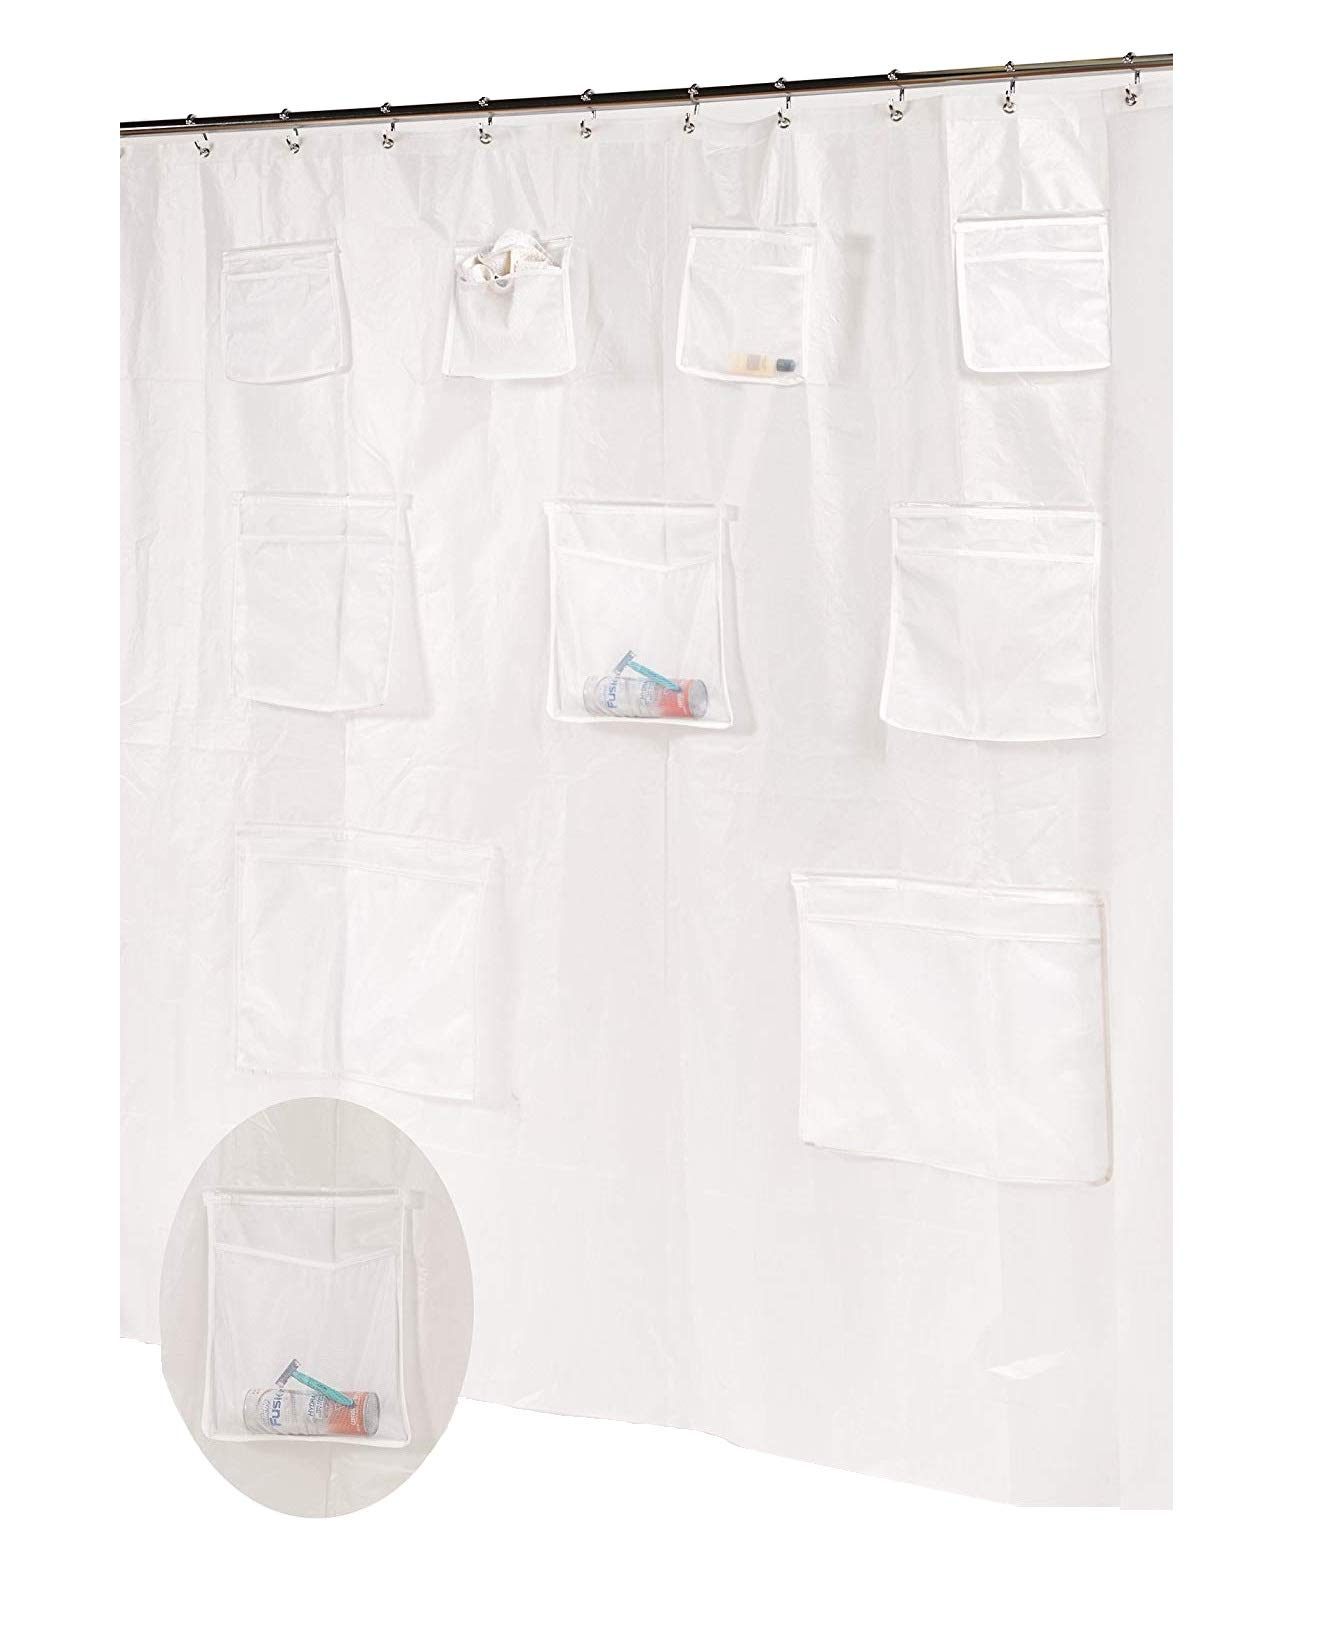 Ben & Jonah Royal Bath Heavy PEVA Non-Toxic Shower Curtain Liner with 9 Mesh Pockets for Organization (70'' x 72'') -Frosty Clear, Super